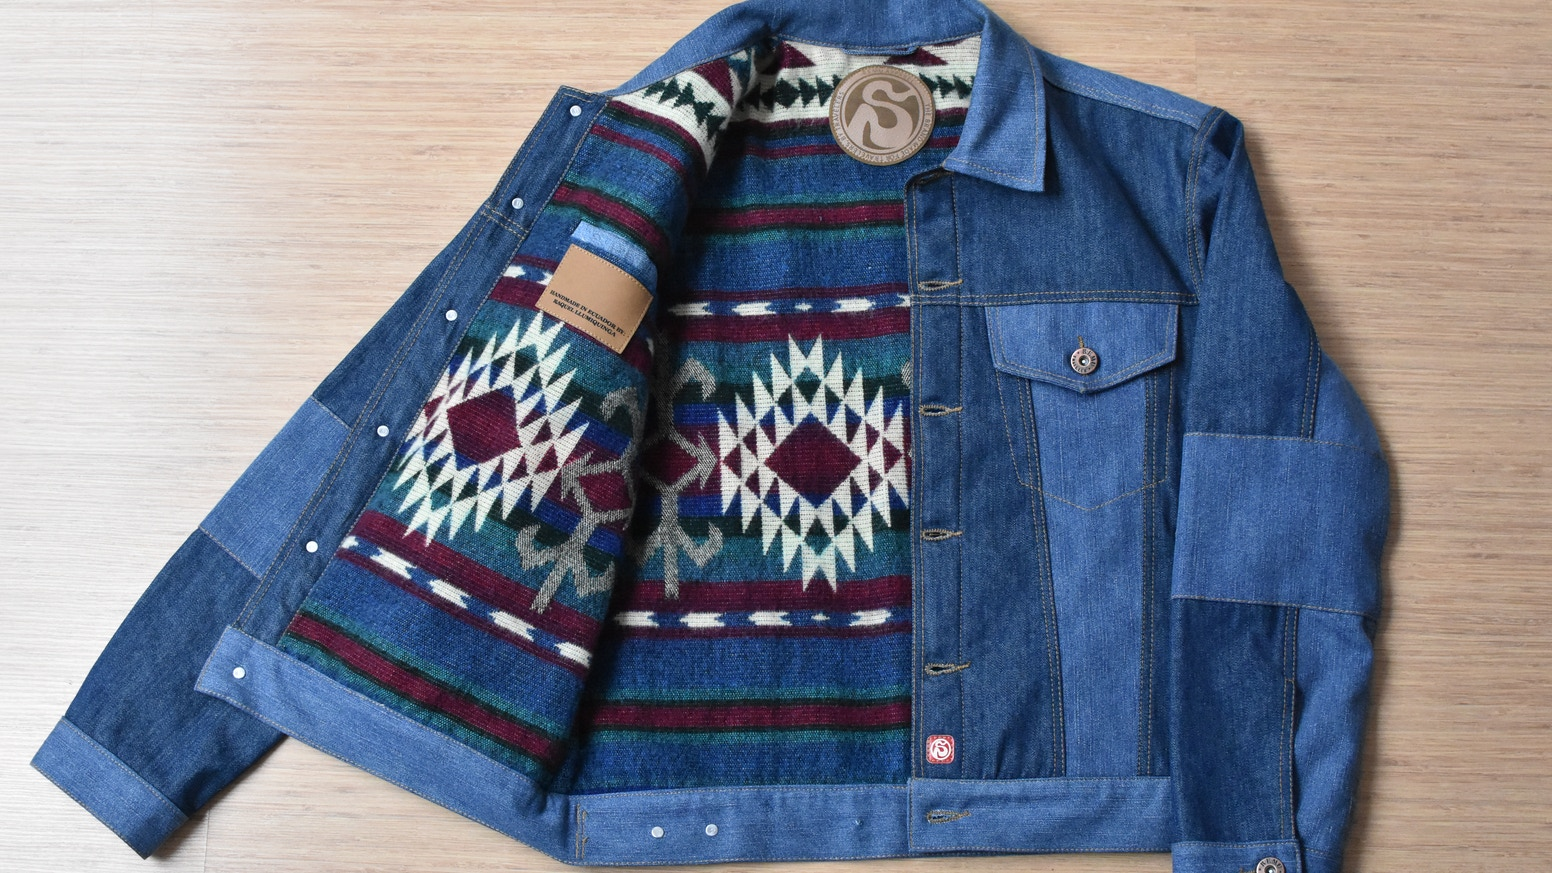 ed40bddfa7 Custom jacket handmade in Ecuador with the purpose to reduce textile waste  while empowering women in